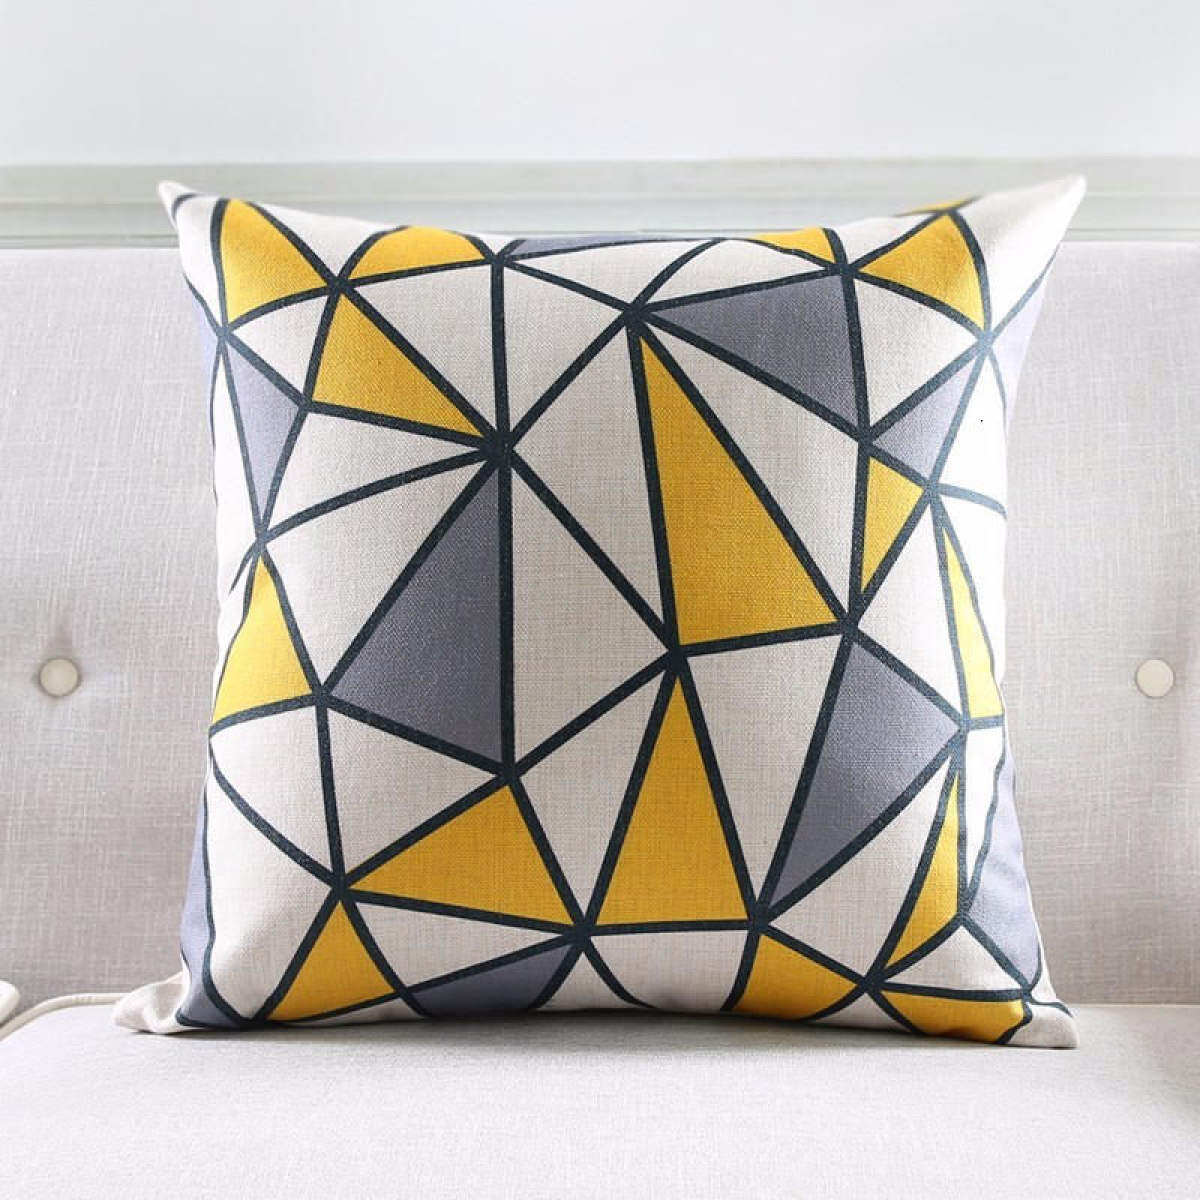 Style Nordic Cushion Cover Gray Yellow Red Decorative Pillows Geometric Cushions Covers Home Decor Throw Pillow Case 45 45cm Lazada